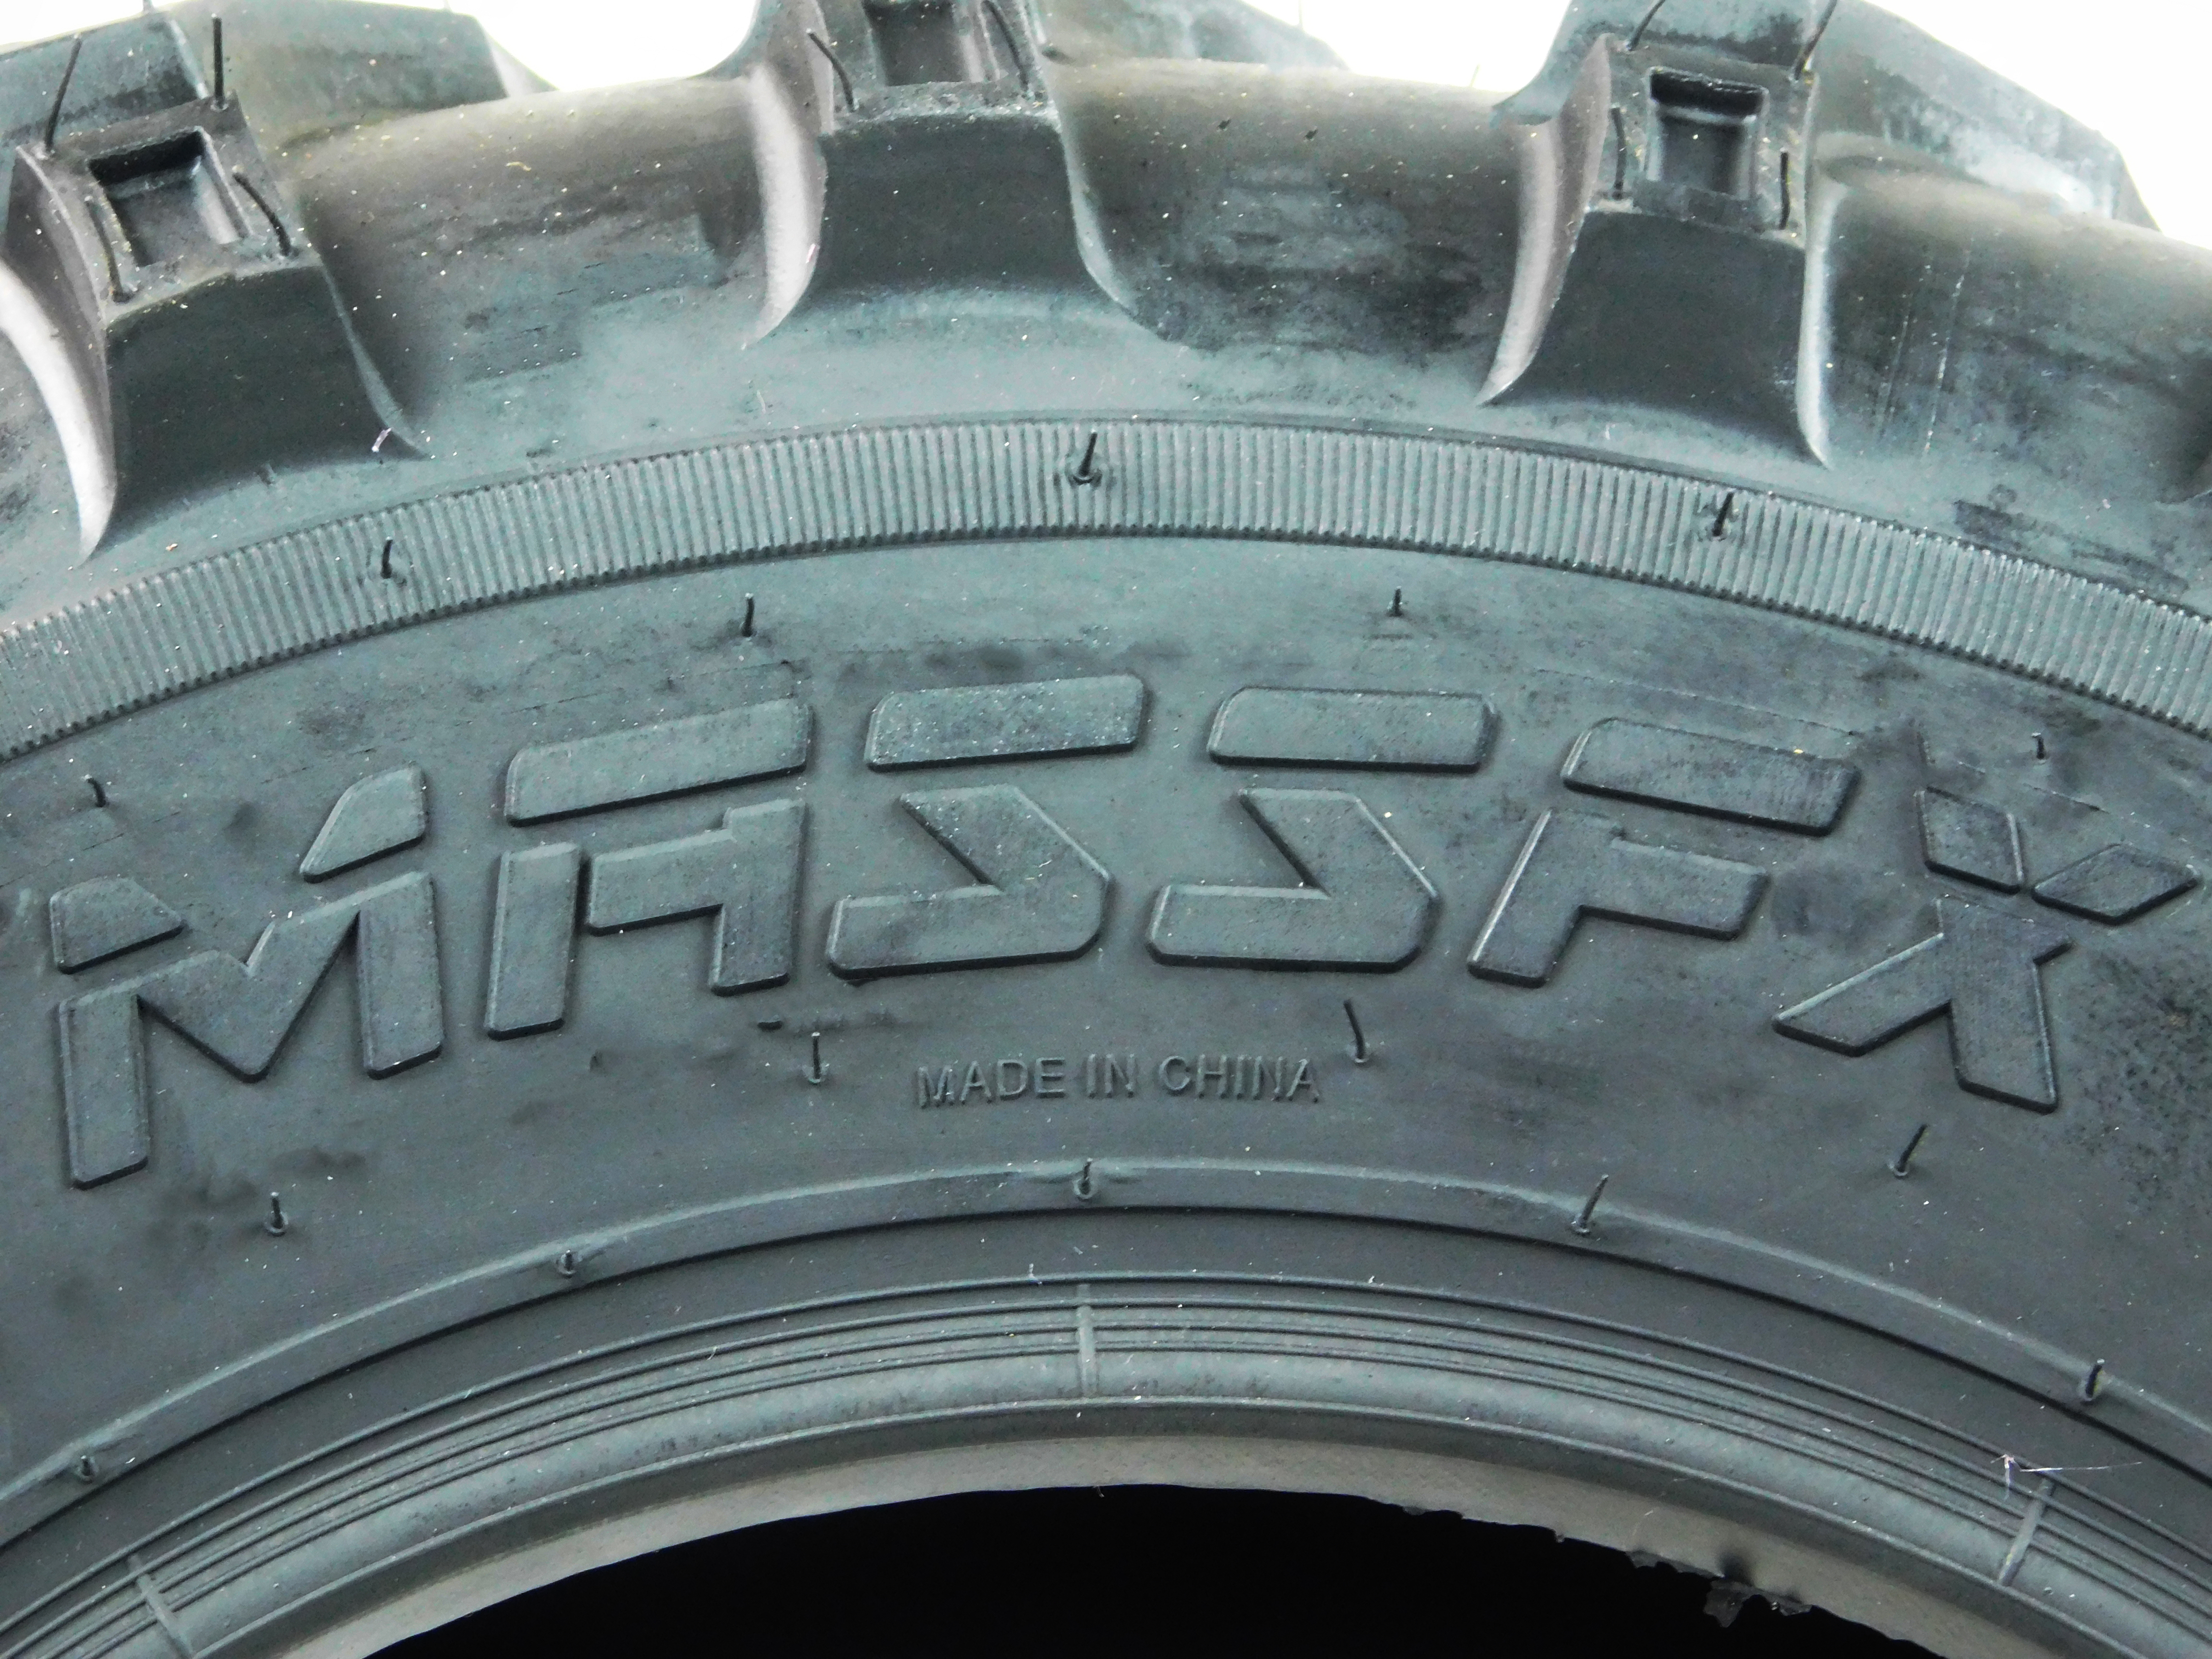 MASSFX-25x8-12-ATV-MS-Single-Tire-25-8-12-Front-6Ply-25inch-image-3